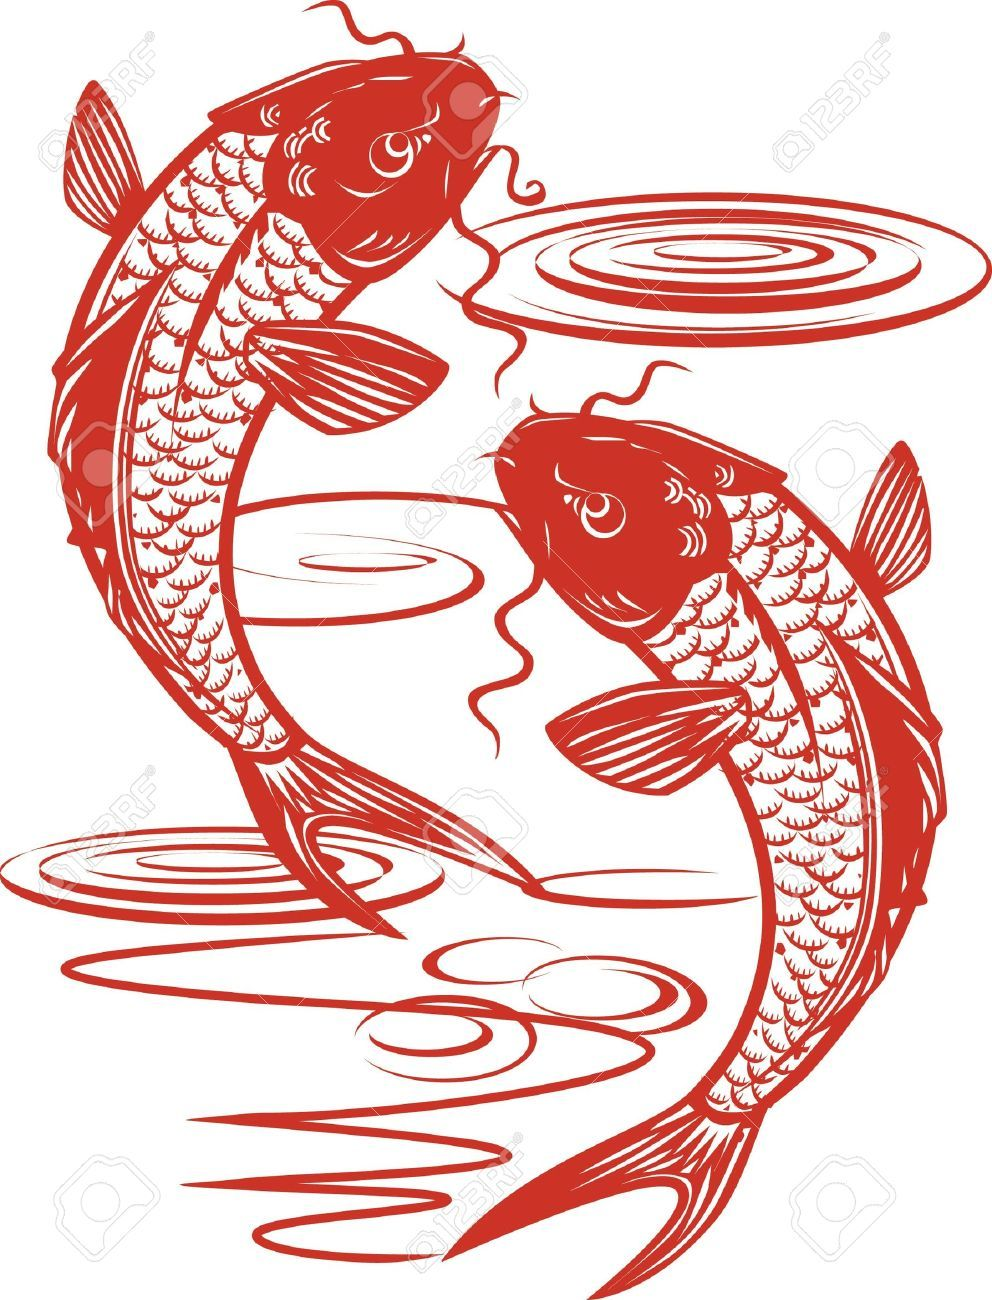 Koi Fish Stock Vector Illustration And Royalty Free Koi Fish Clipart ...